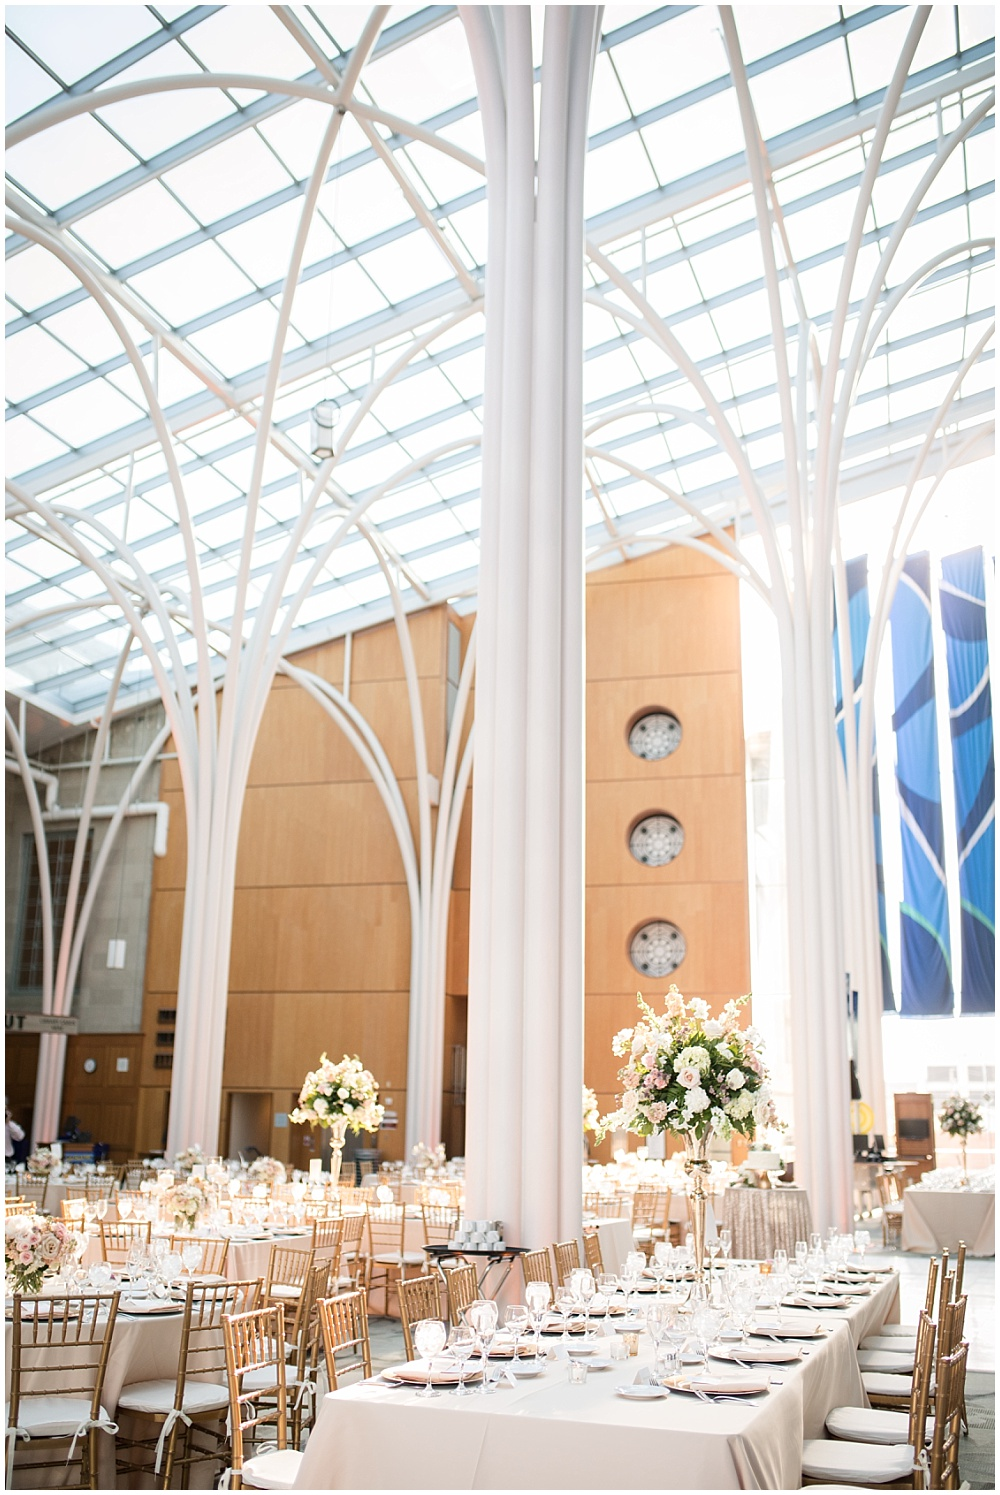 Blush wedding tablescape with a mix of high and low florals created by McNamara Florists and blush linens.   Spring blush and gold downtown Indianapolis Central Library wedding alongside Evangeline Renee Photography + Jessica Dum Wedding Coordination